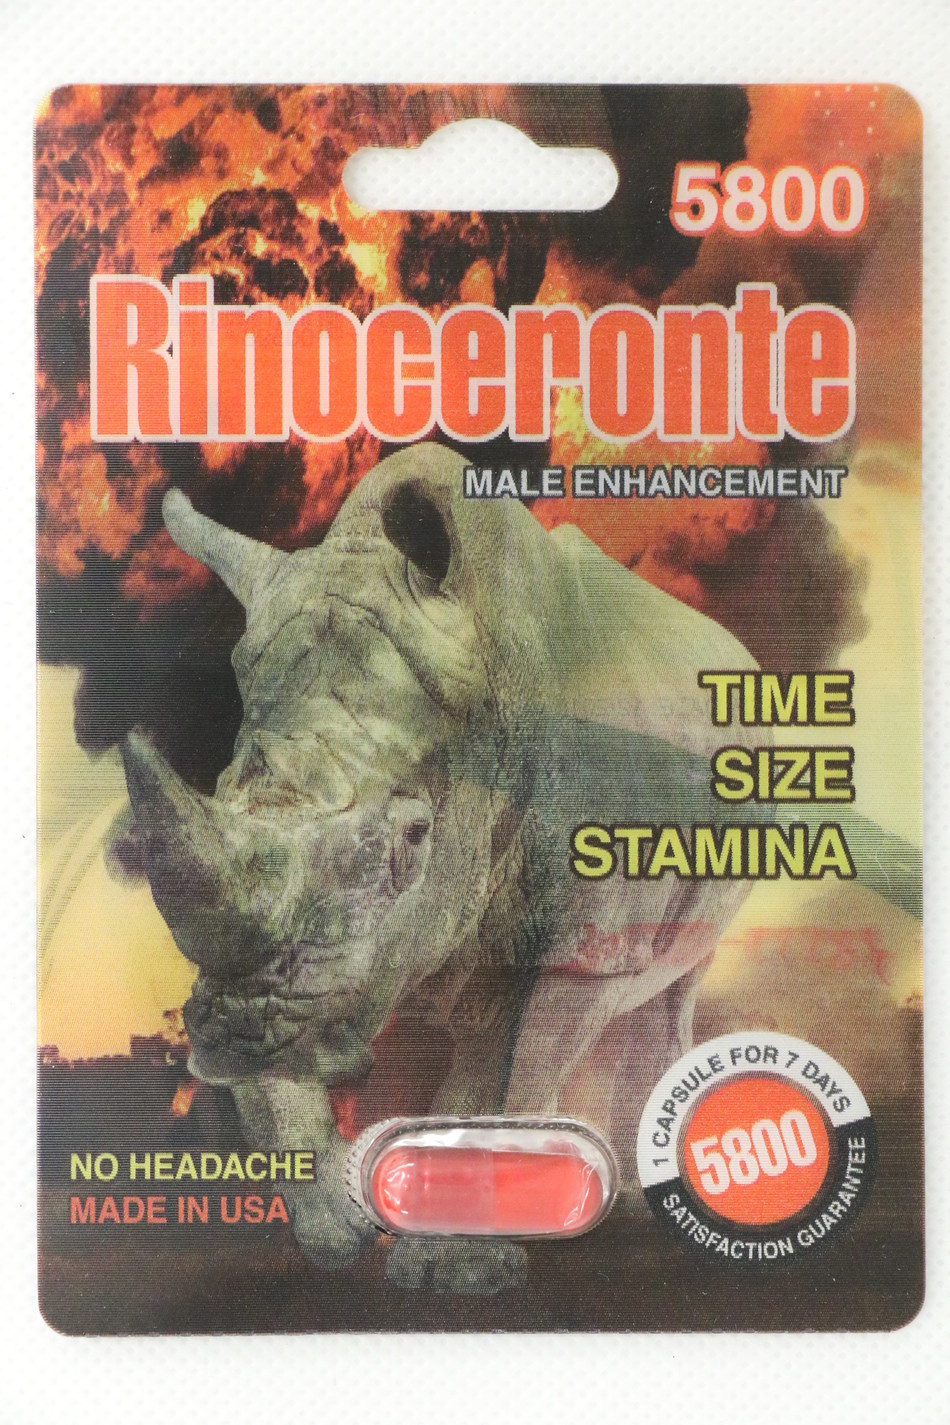 Rinoceronte 5800 (CNW Group/Health Canada)